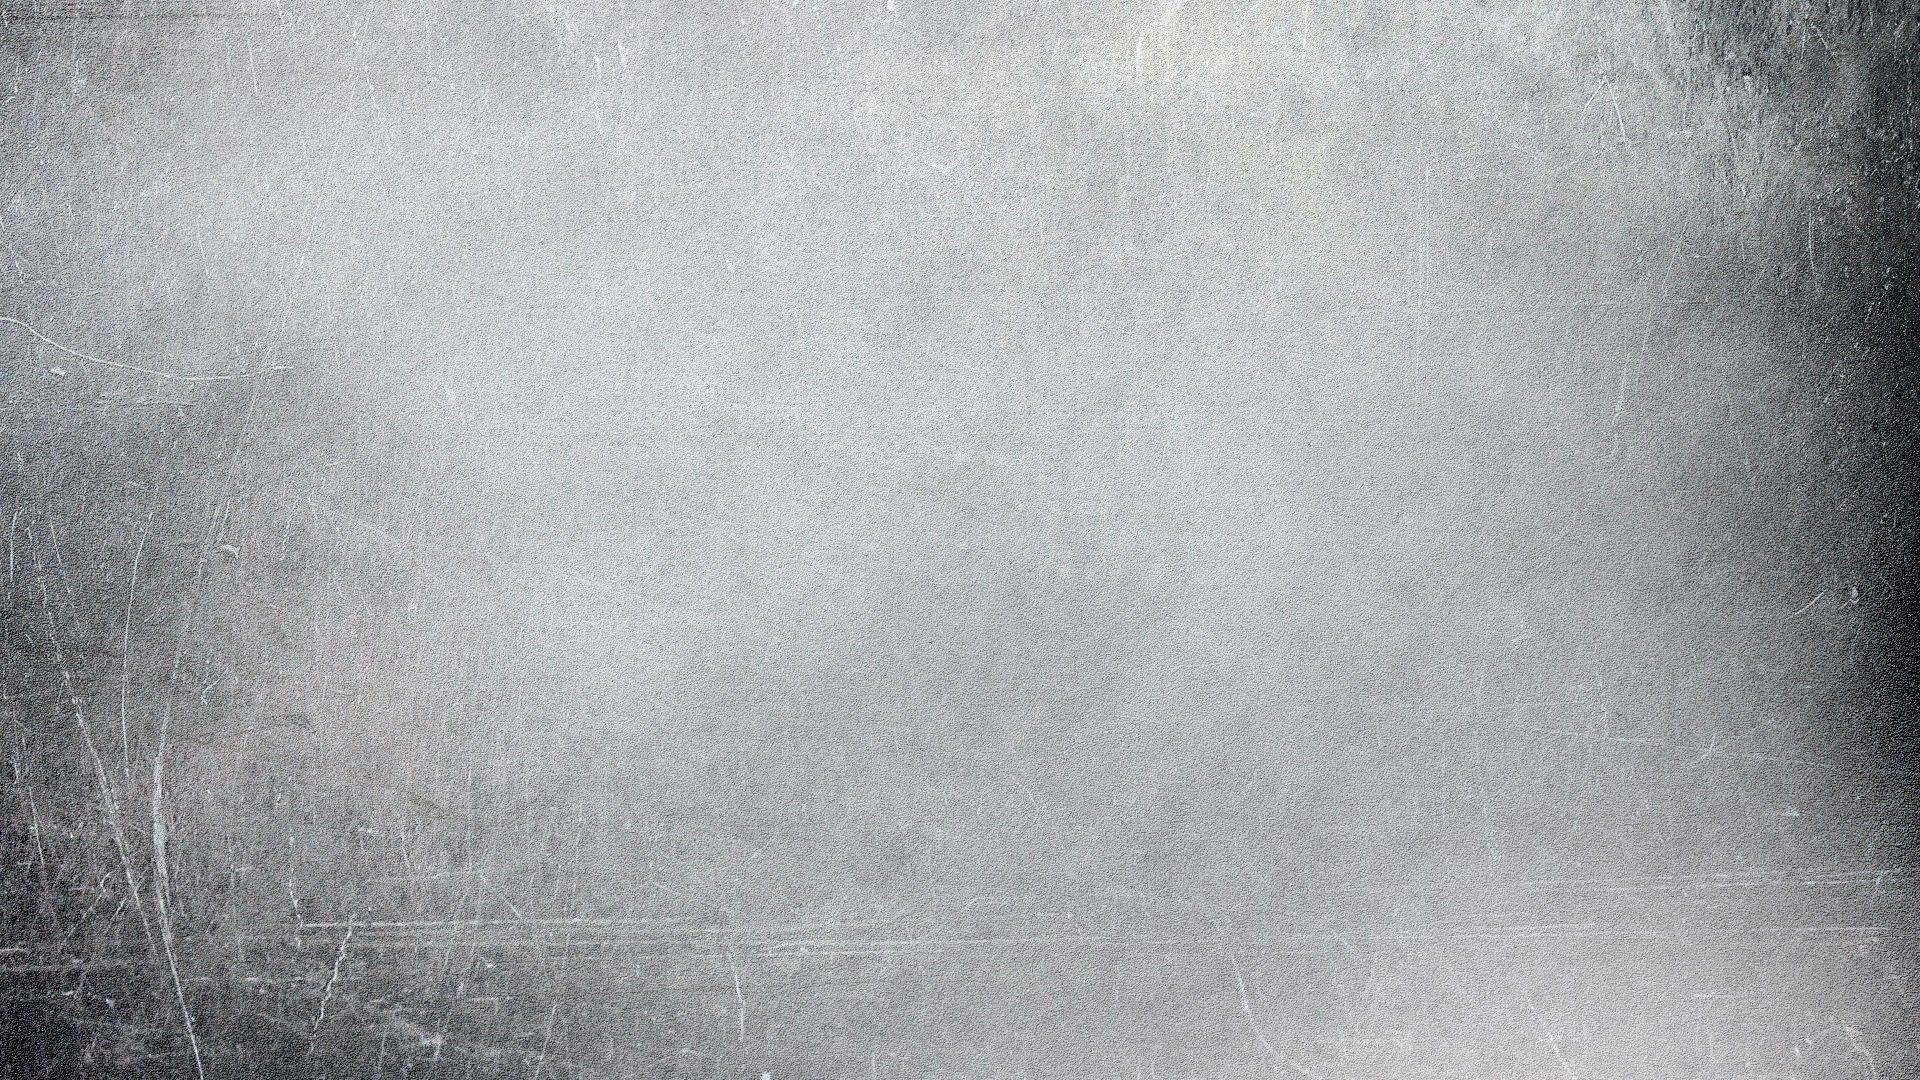 Grey Grunge Wallpapers - Top Free Grey Grunge Backgrounds ...